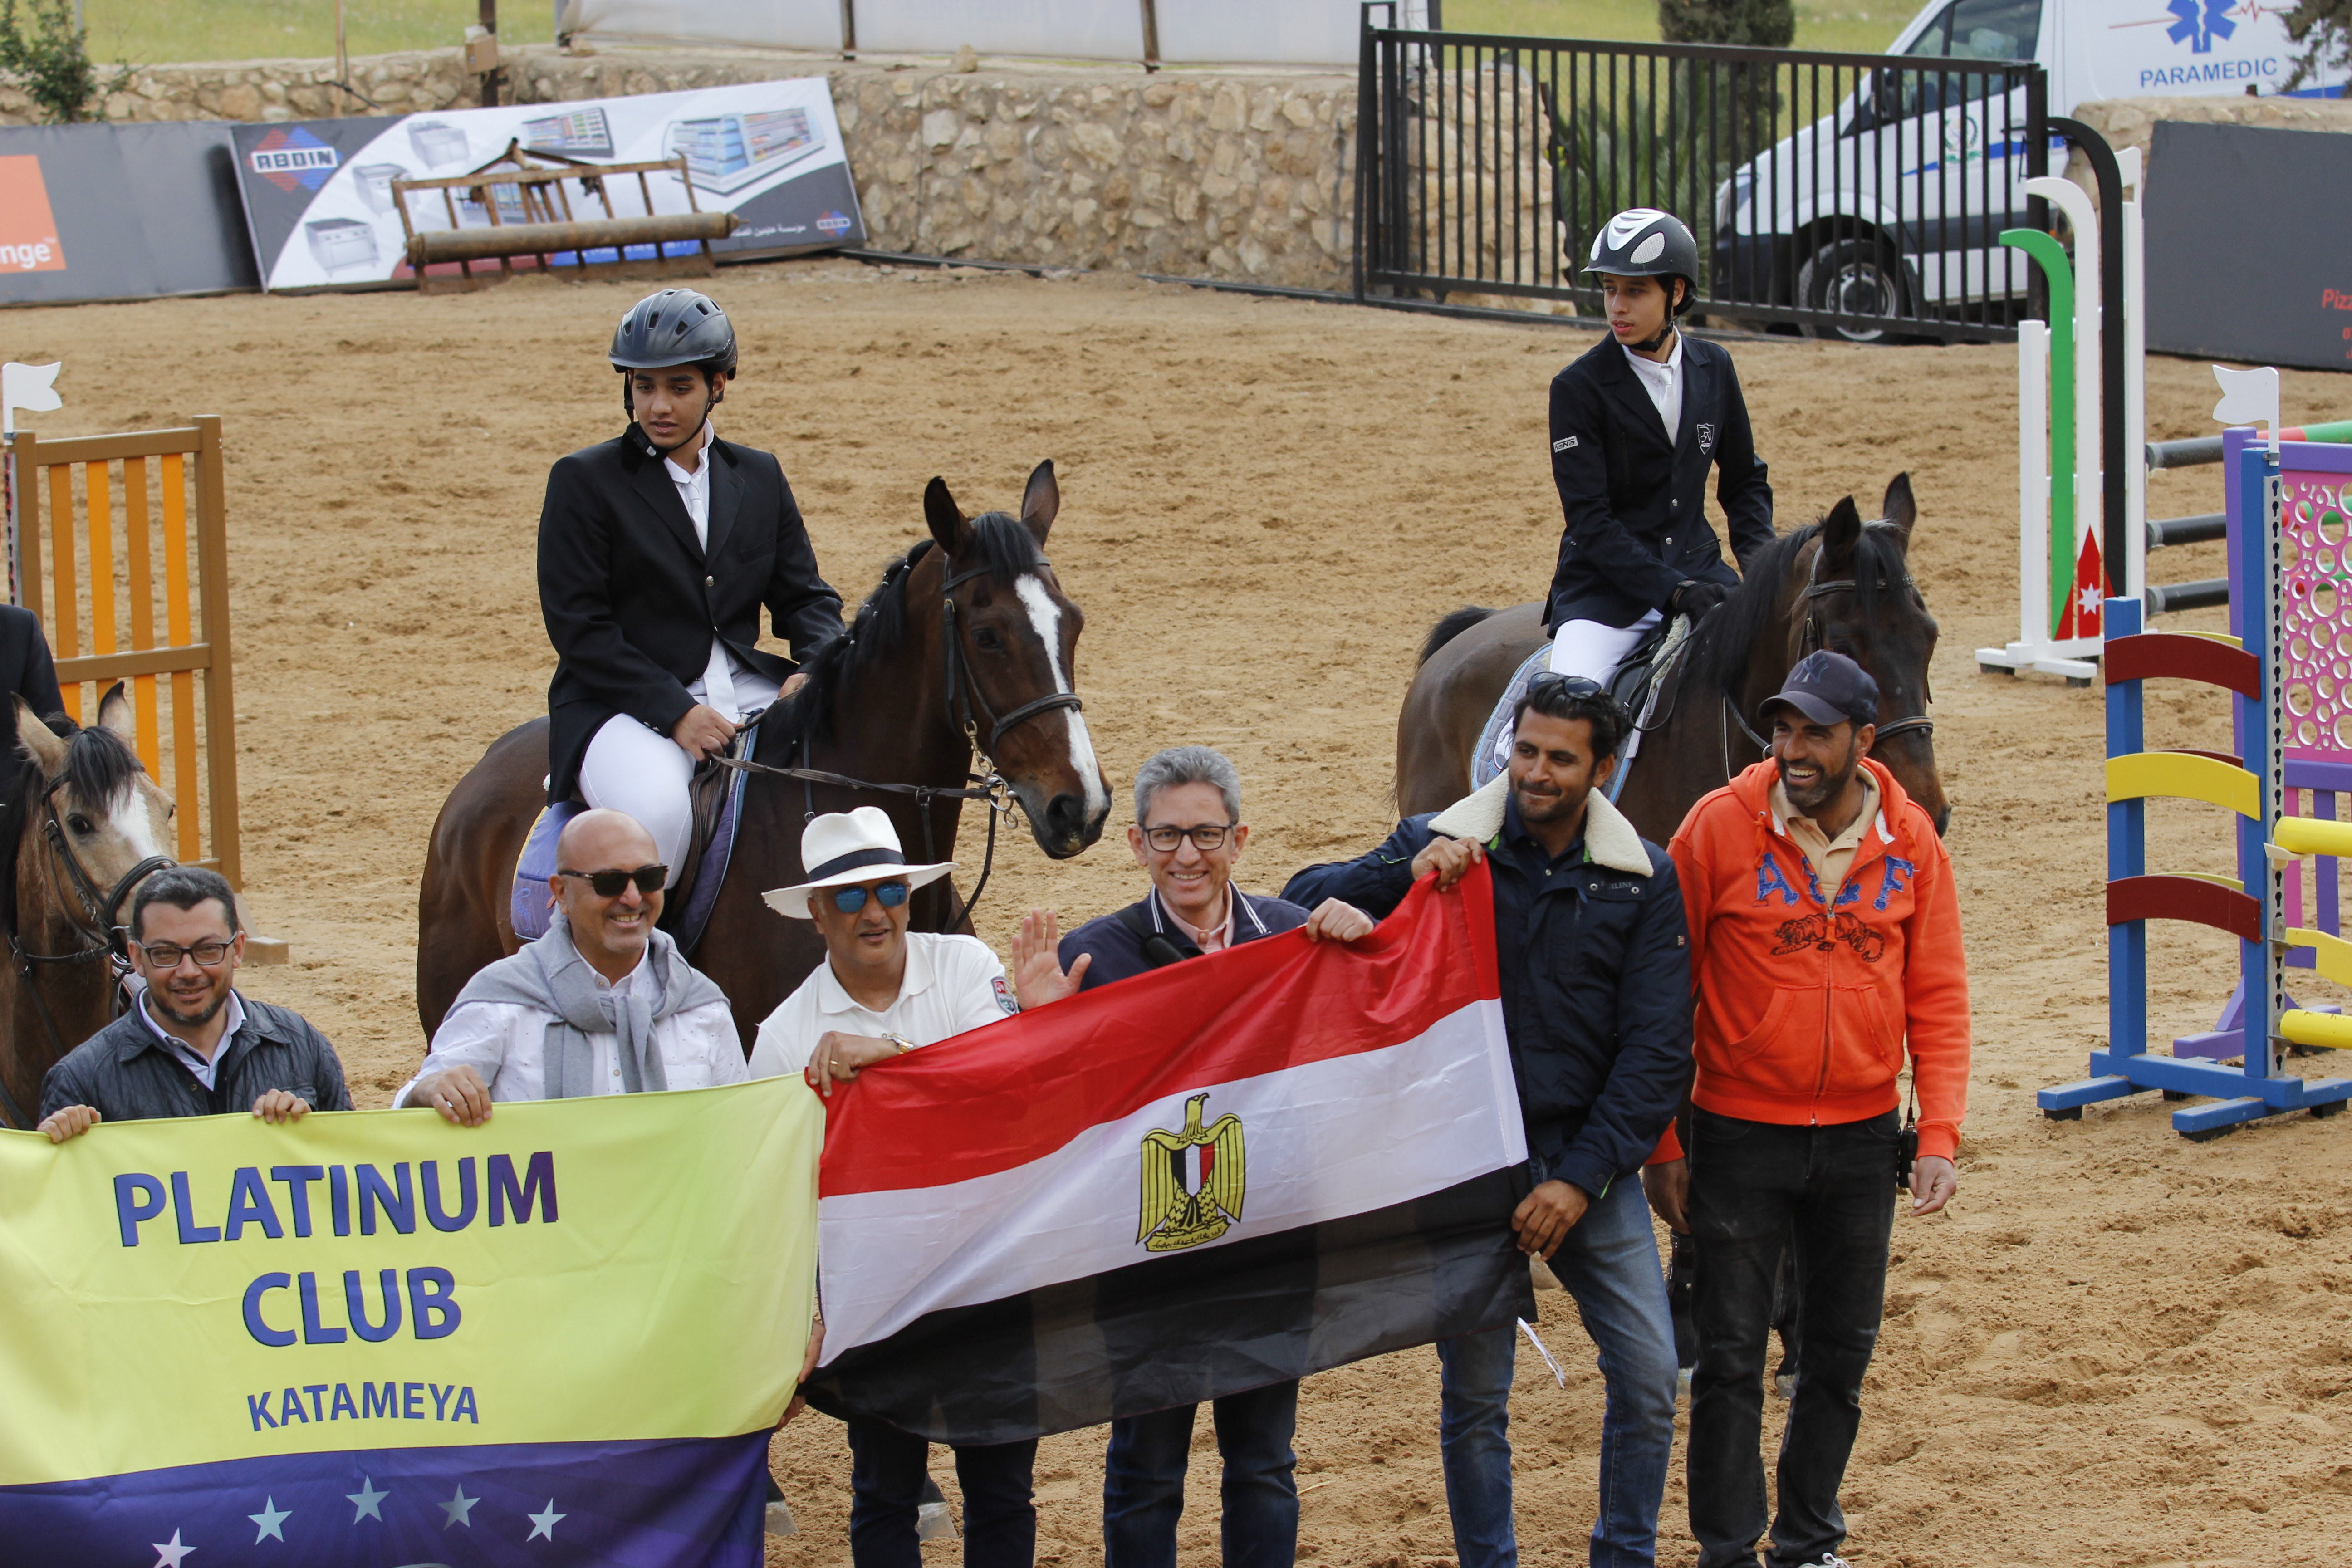 Horse Times Egypt: Equestrian Magazine :News : AMMAN FRIENDLY INTERNATIONAL CLUB S COMPETITIONS 2018 ZIAD TAREK HEMIDA OF PLATINUM CLUB EGYPT CLINCHES THE GOLD